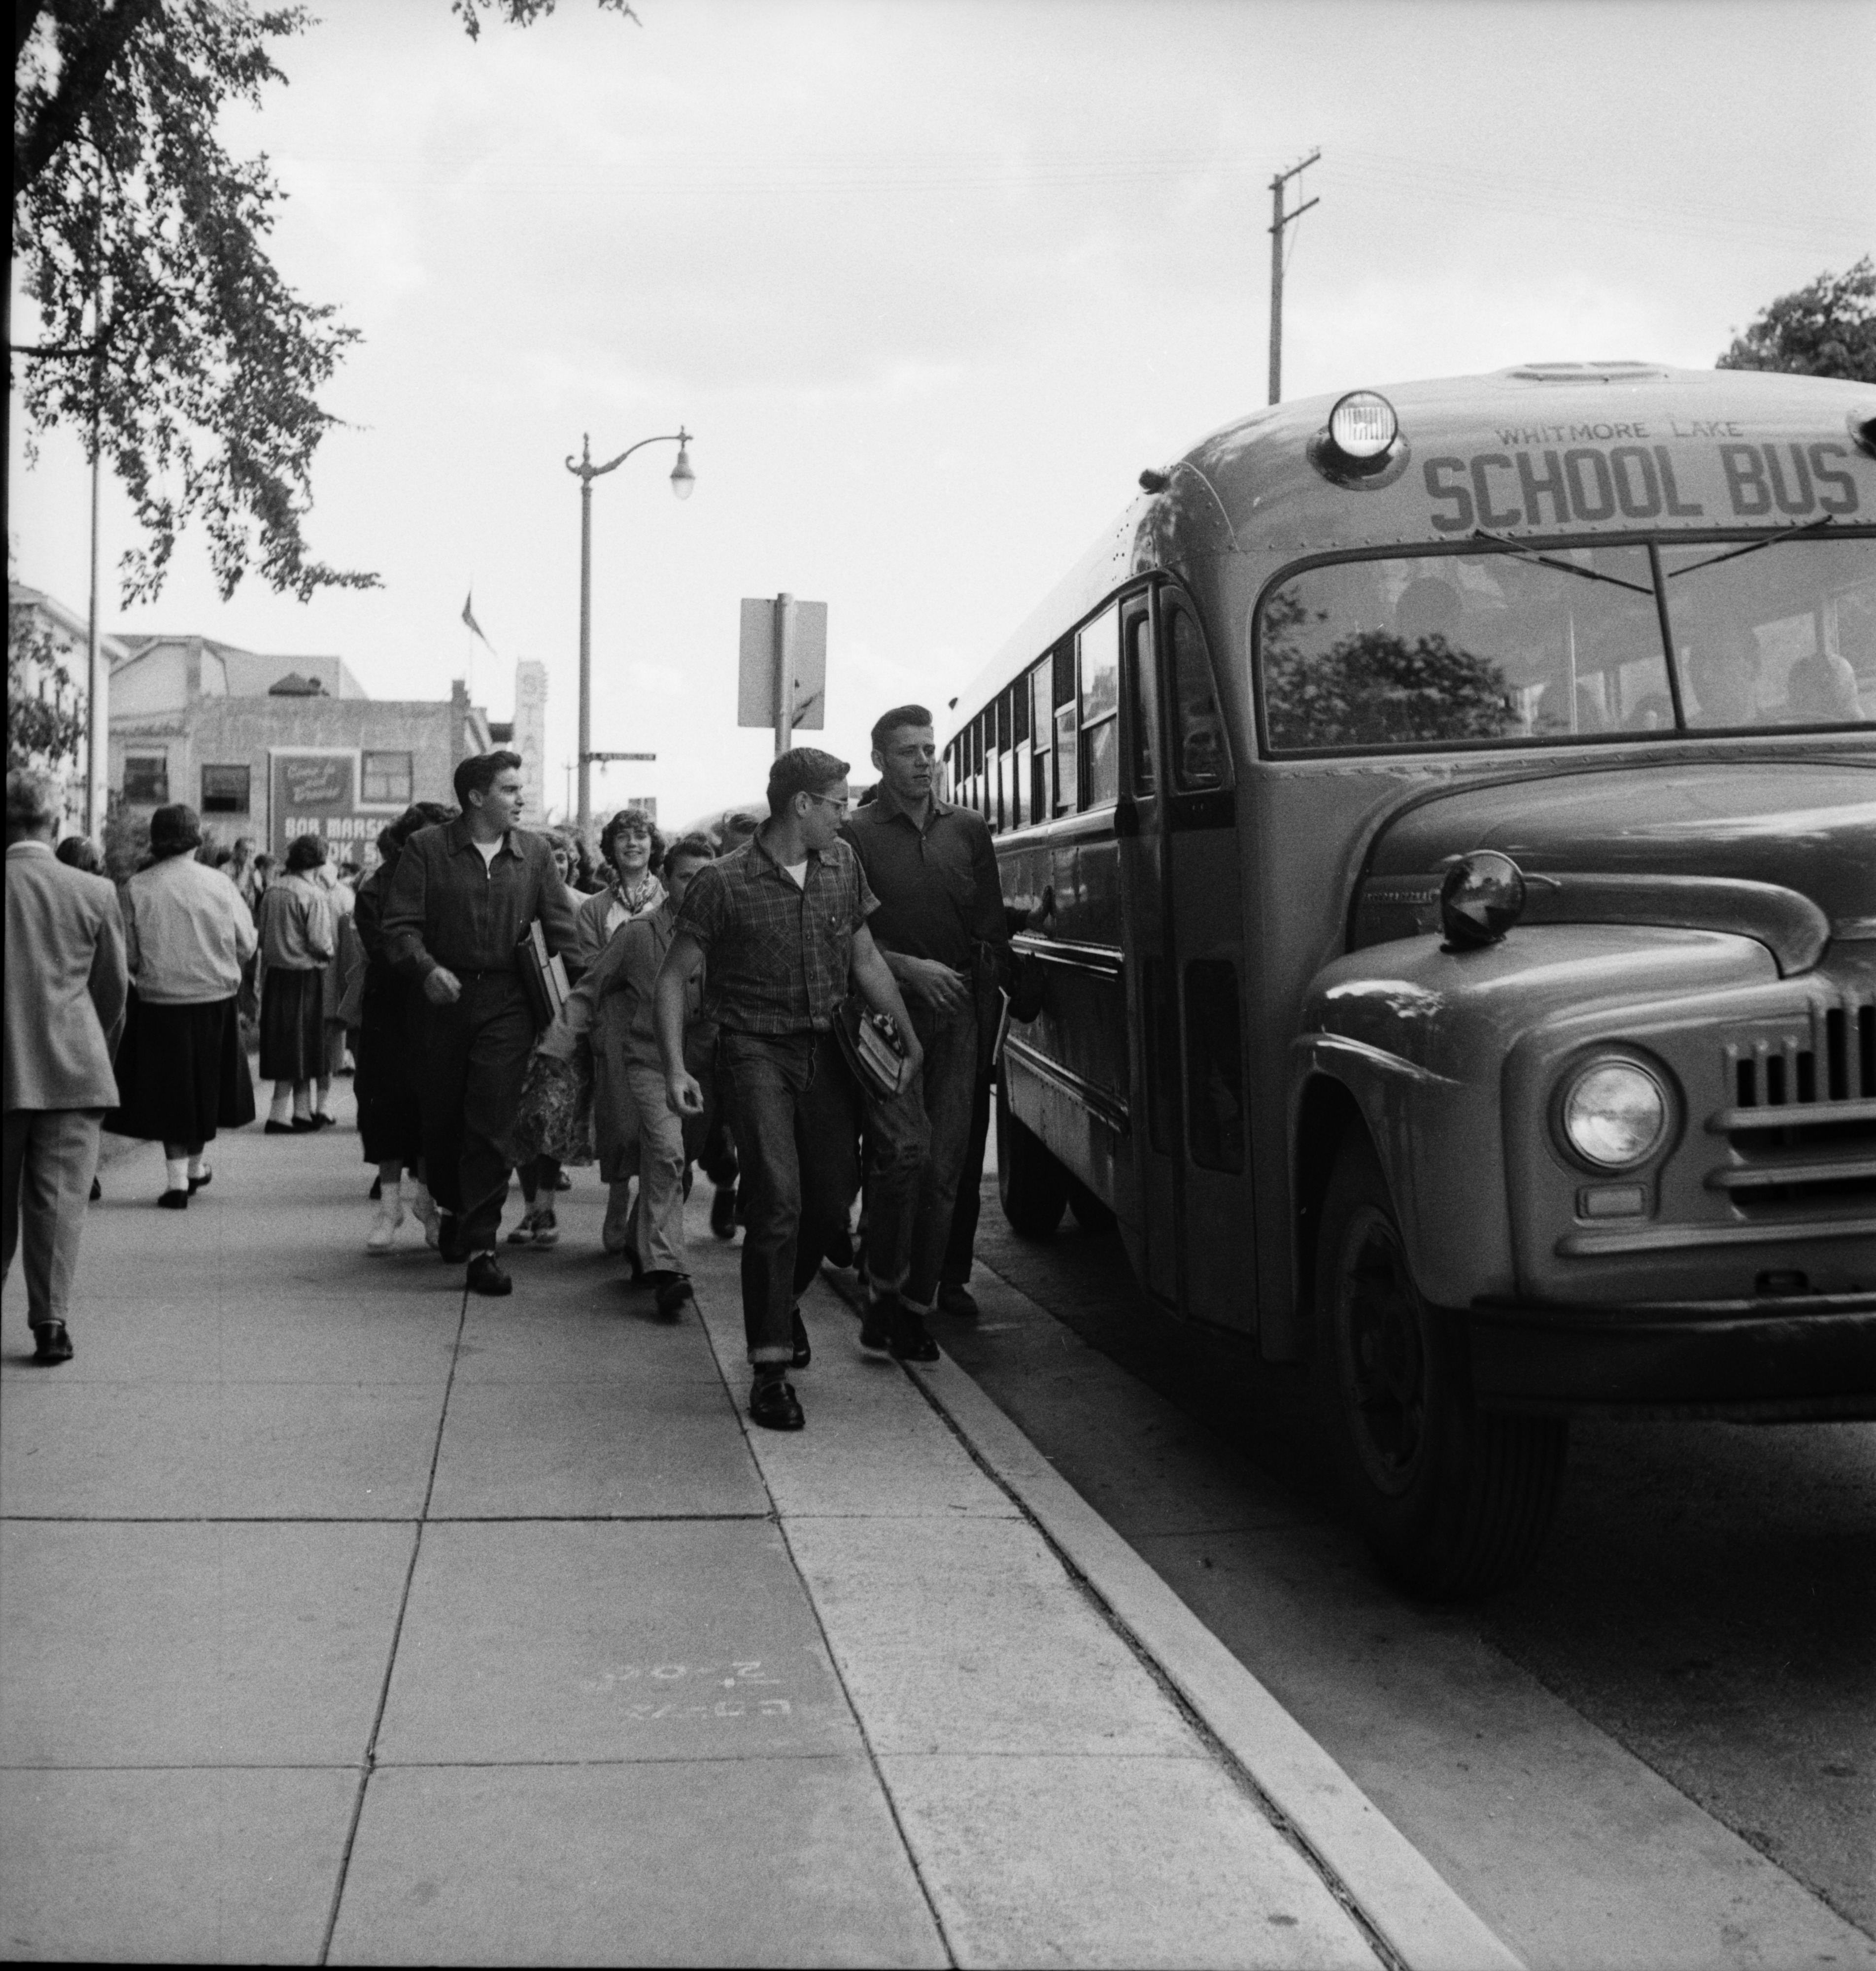 Catching A Bus In Front of Ann Arbor High School, September 1952 image